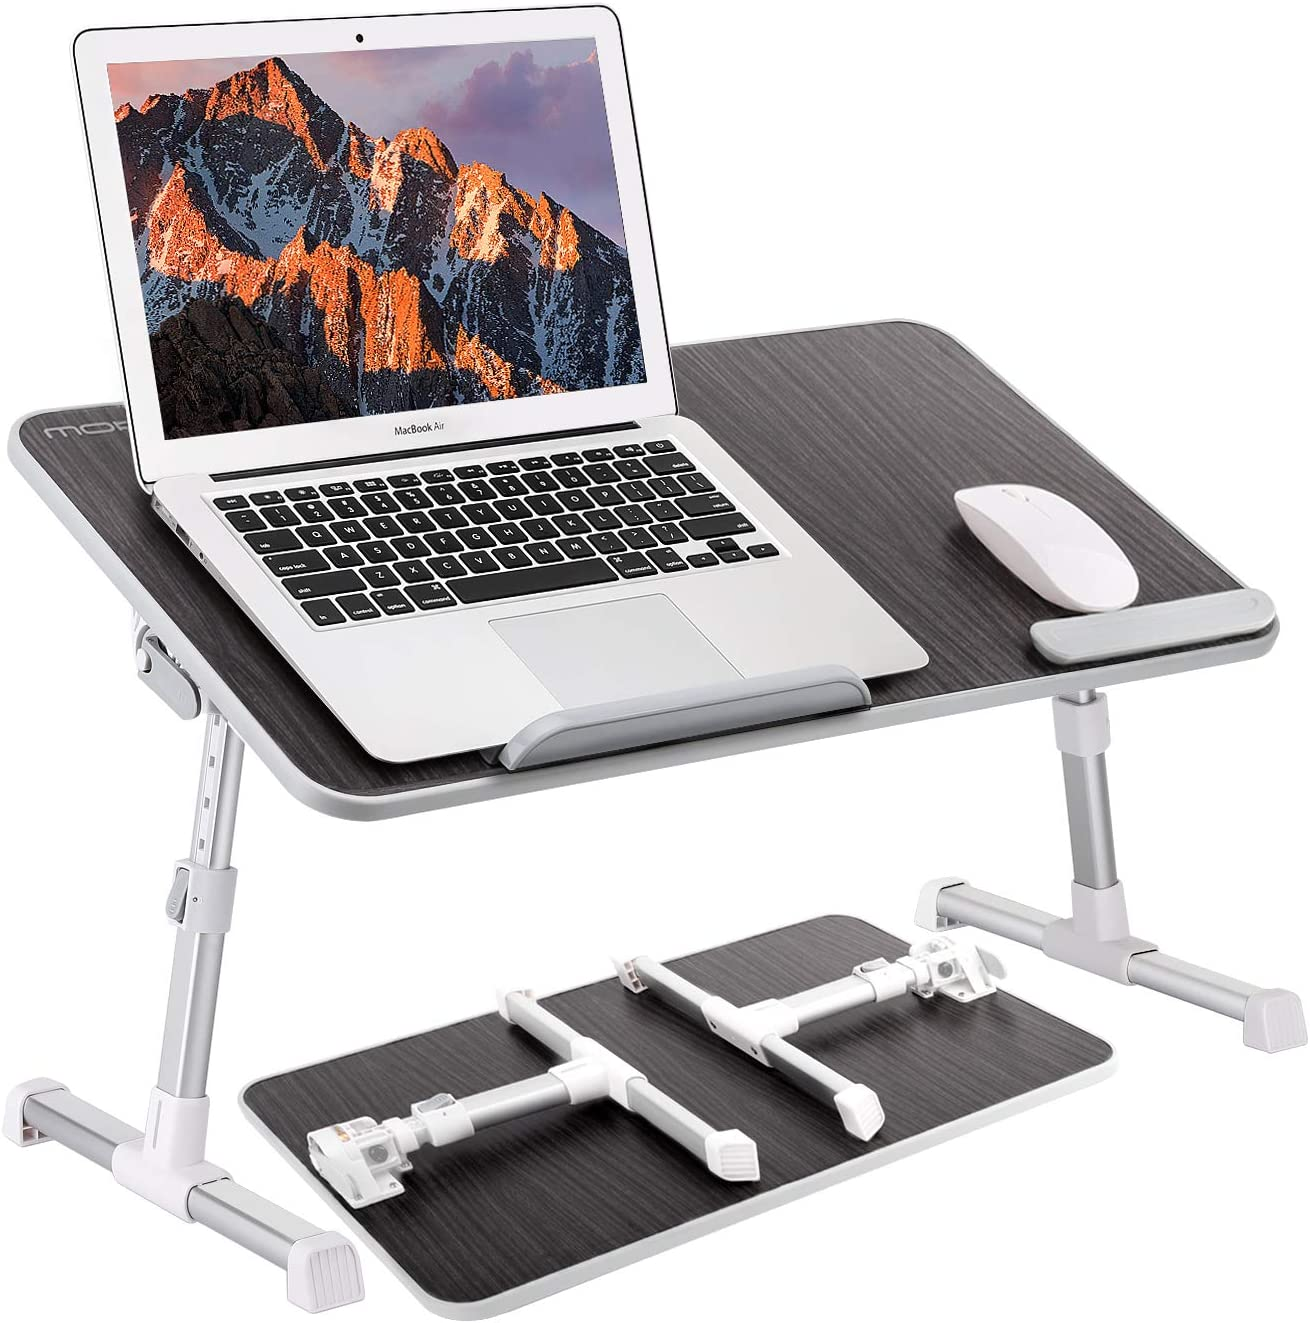 AboveTEK Portable Laptop Desk Black Walnut Foldable Tray Table for Reading Writing Watching Videos on Bed Couch Sofa Floor Height Adjustable Notebook Computer Stand